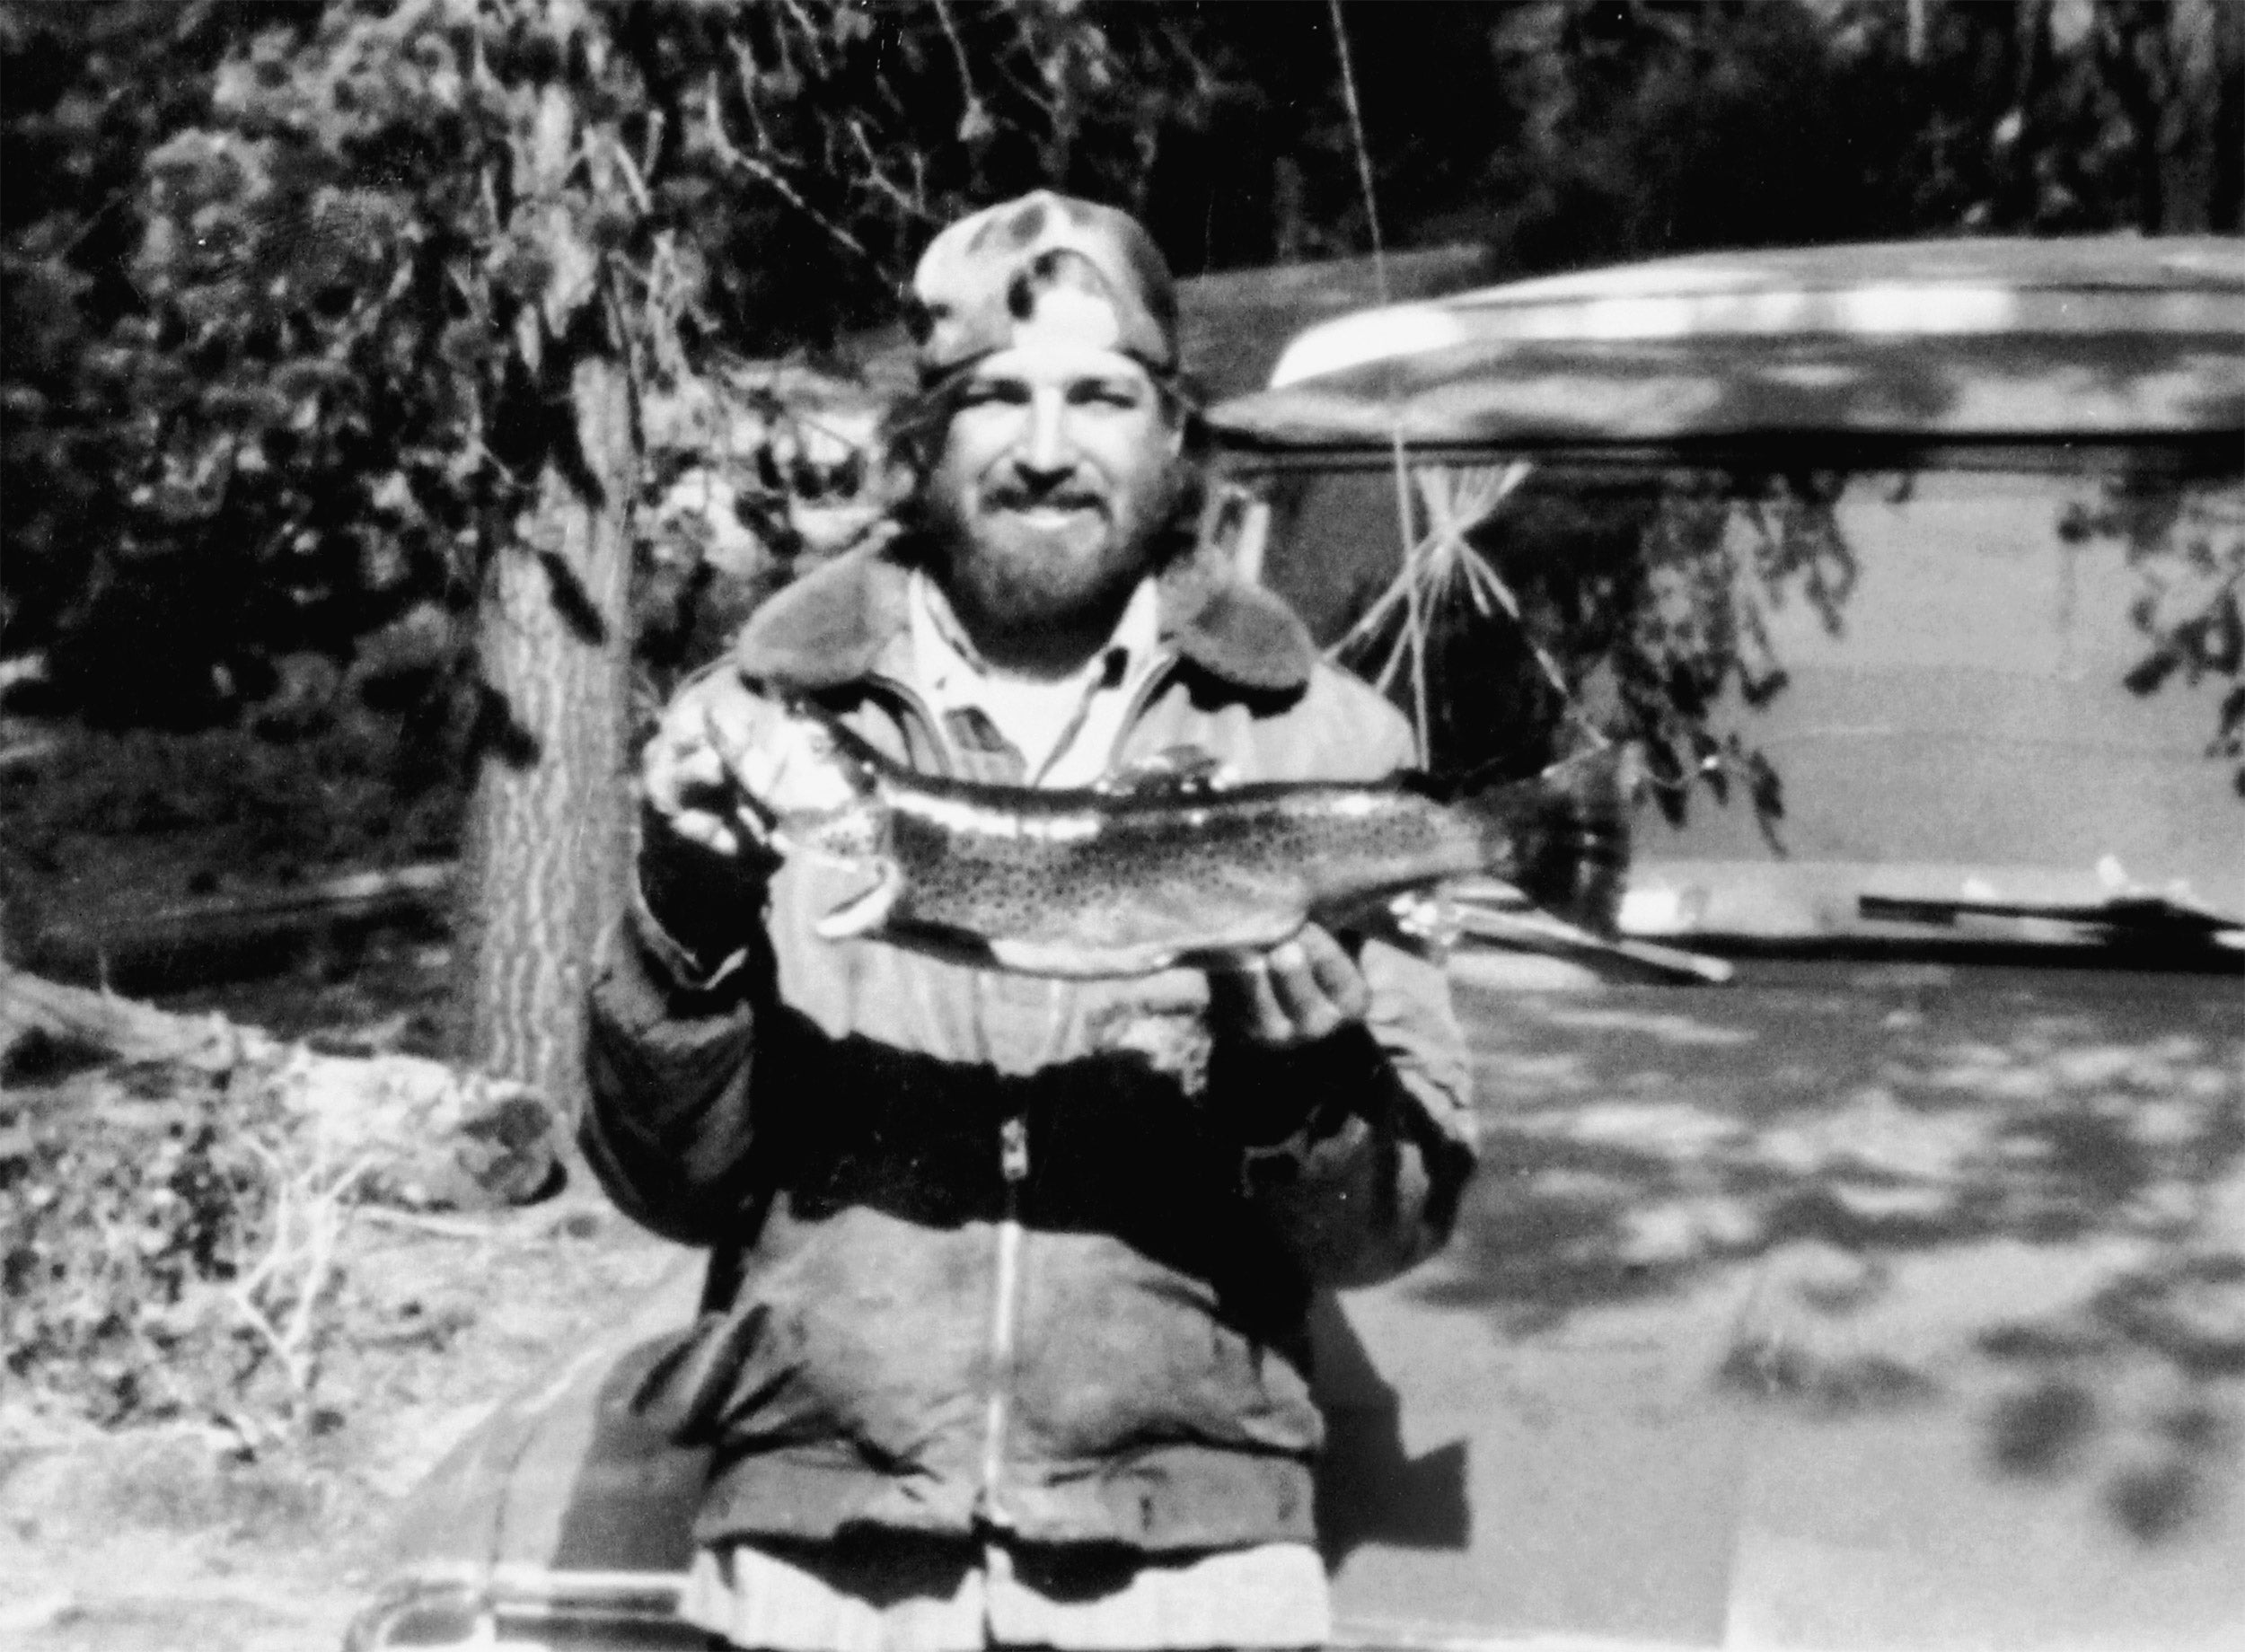 Bearded man holding large trout.